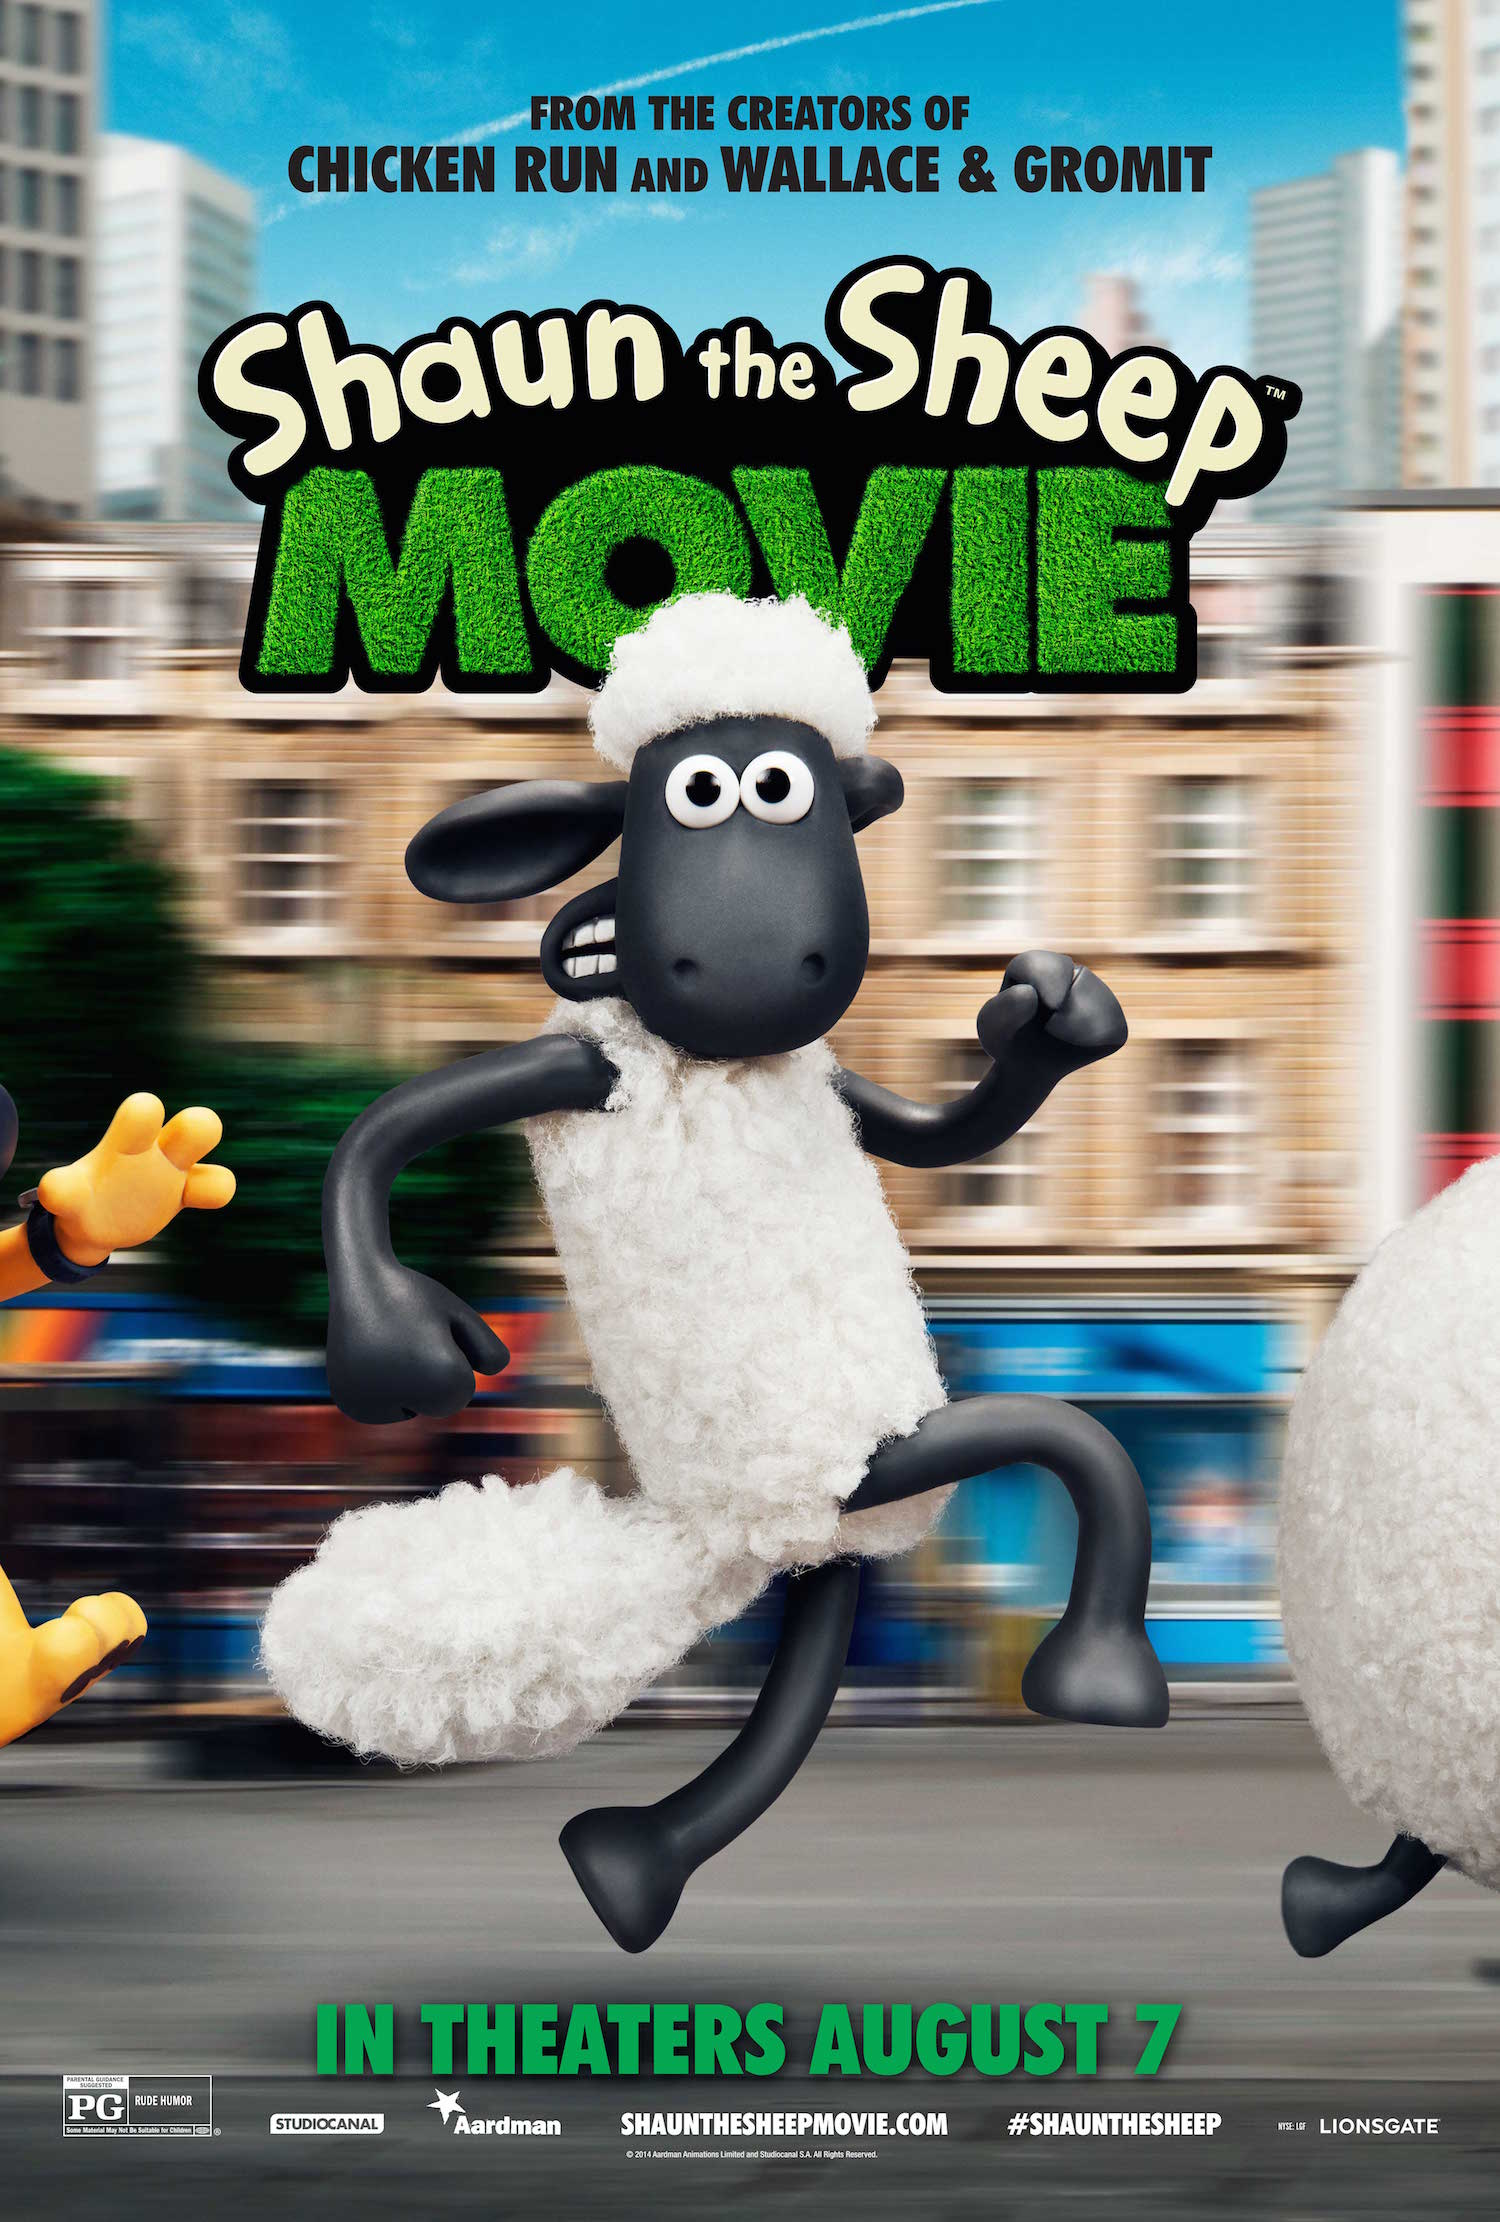 SHAUN THE SHEEP MOVIE Opens Nationwide AUGUST 7 2015